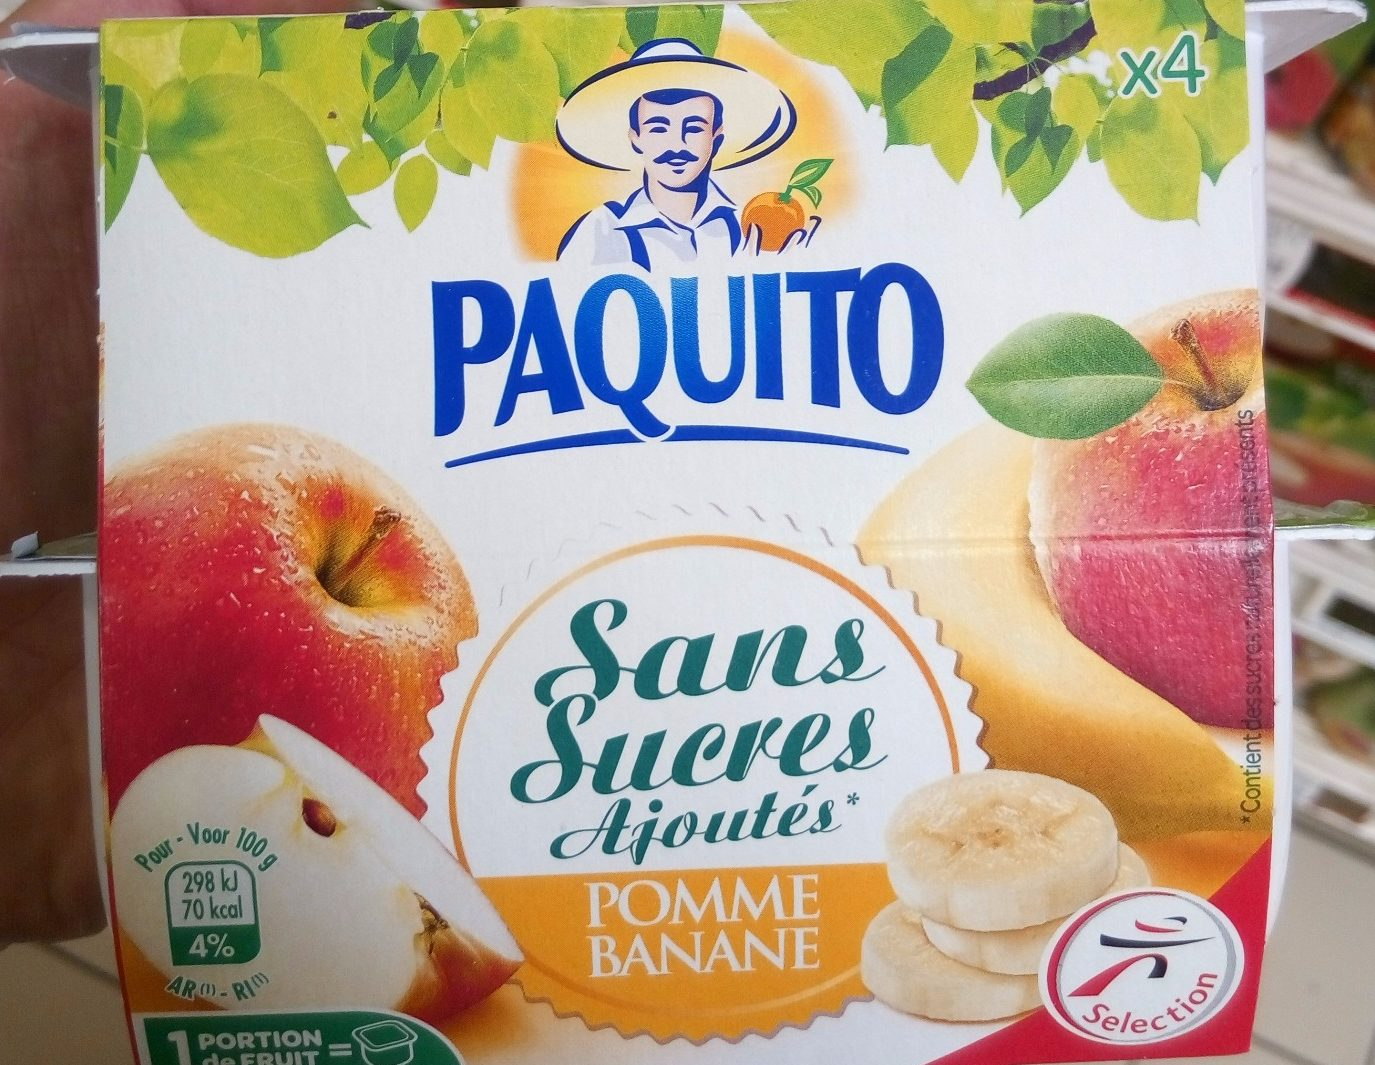 Paquito Pom Banan SSUCRE4 - Product